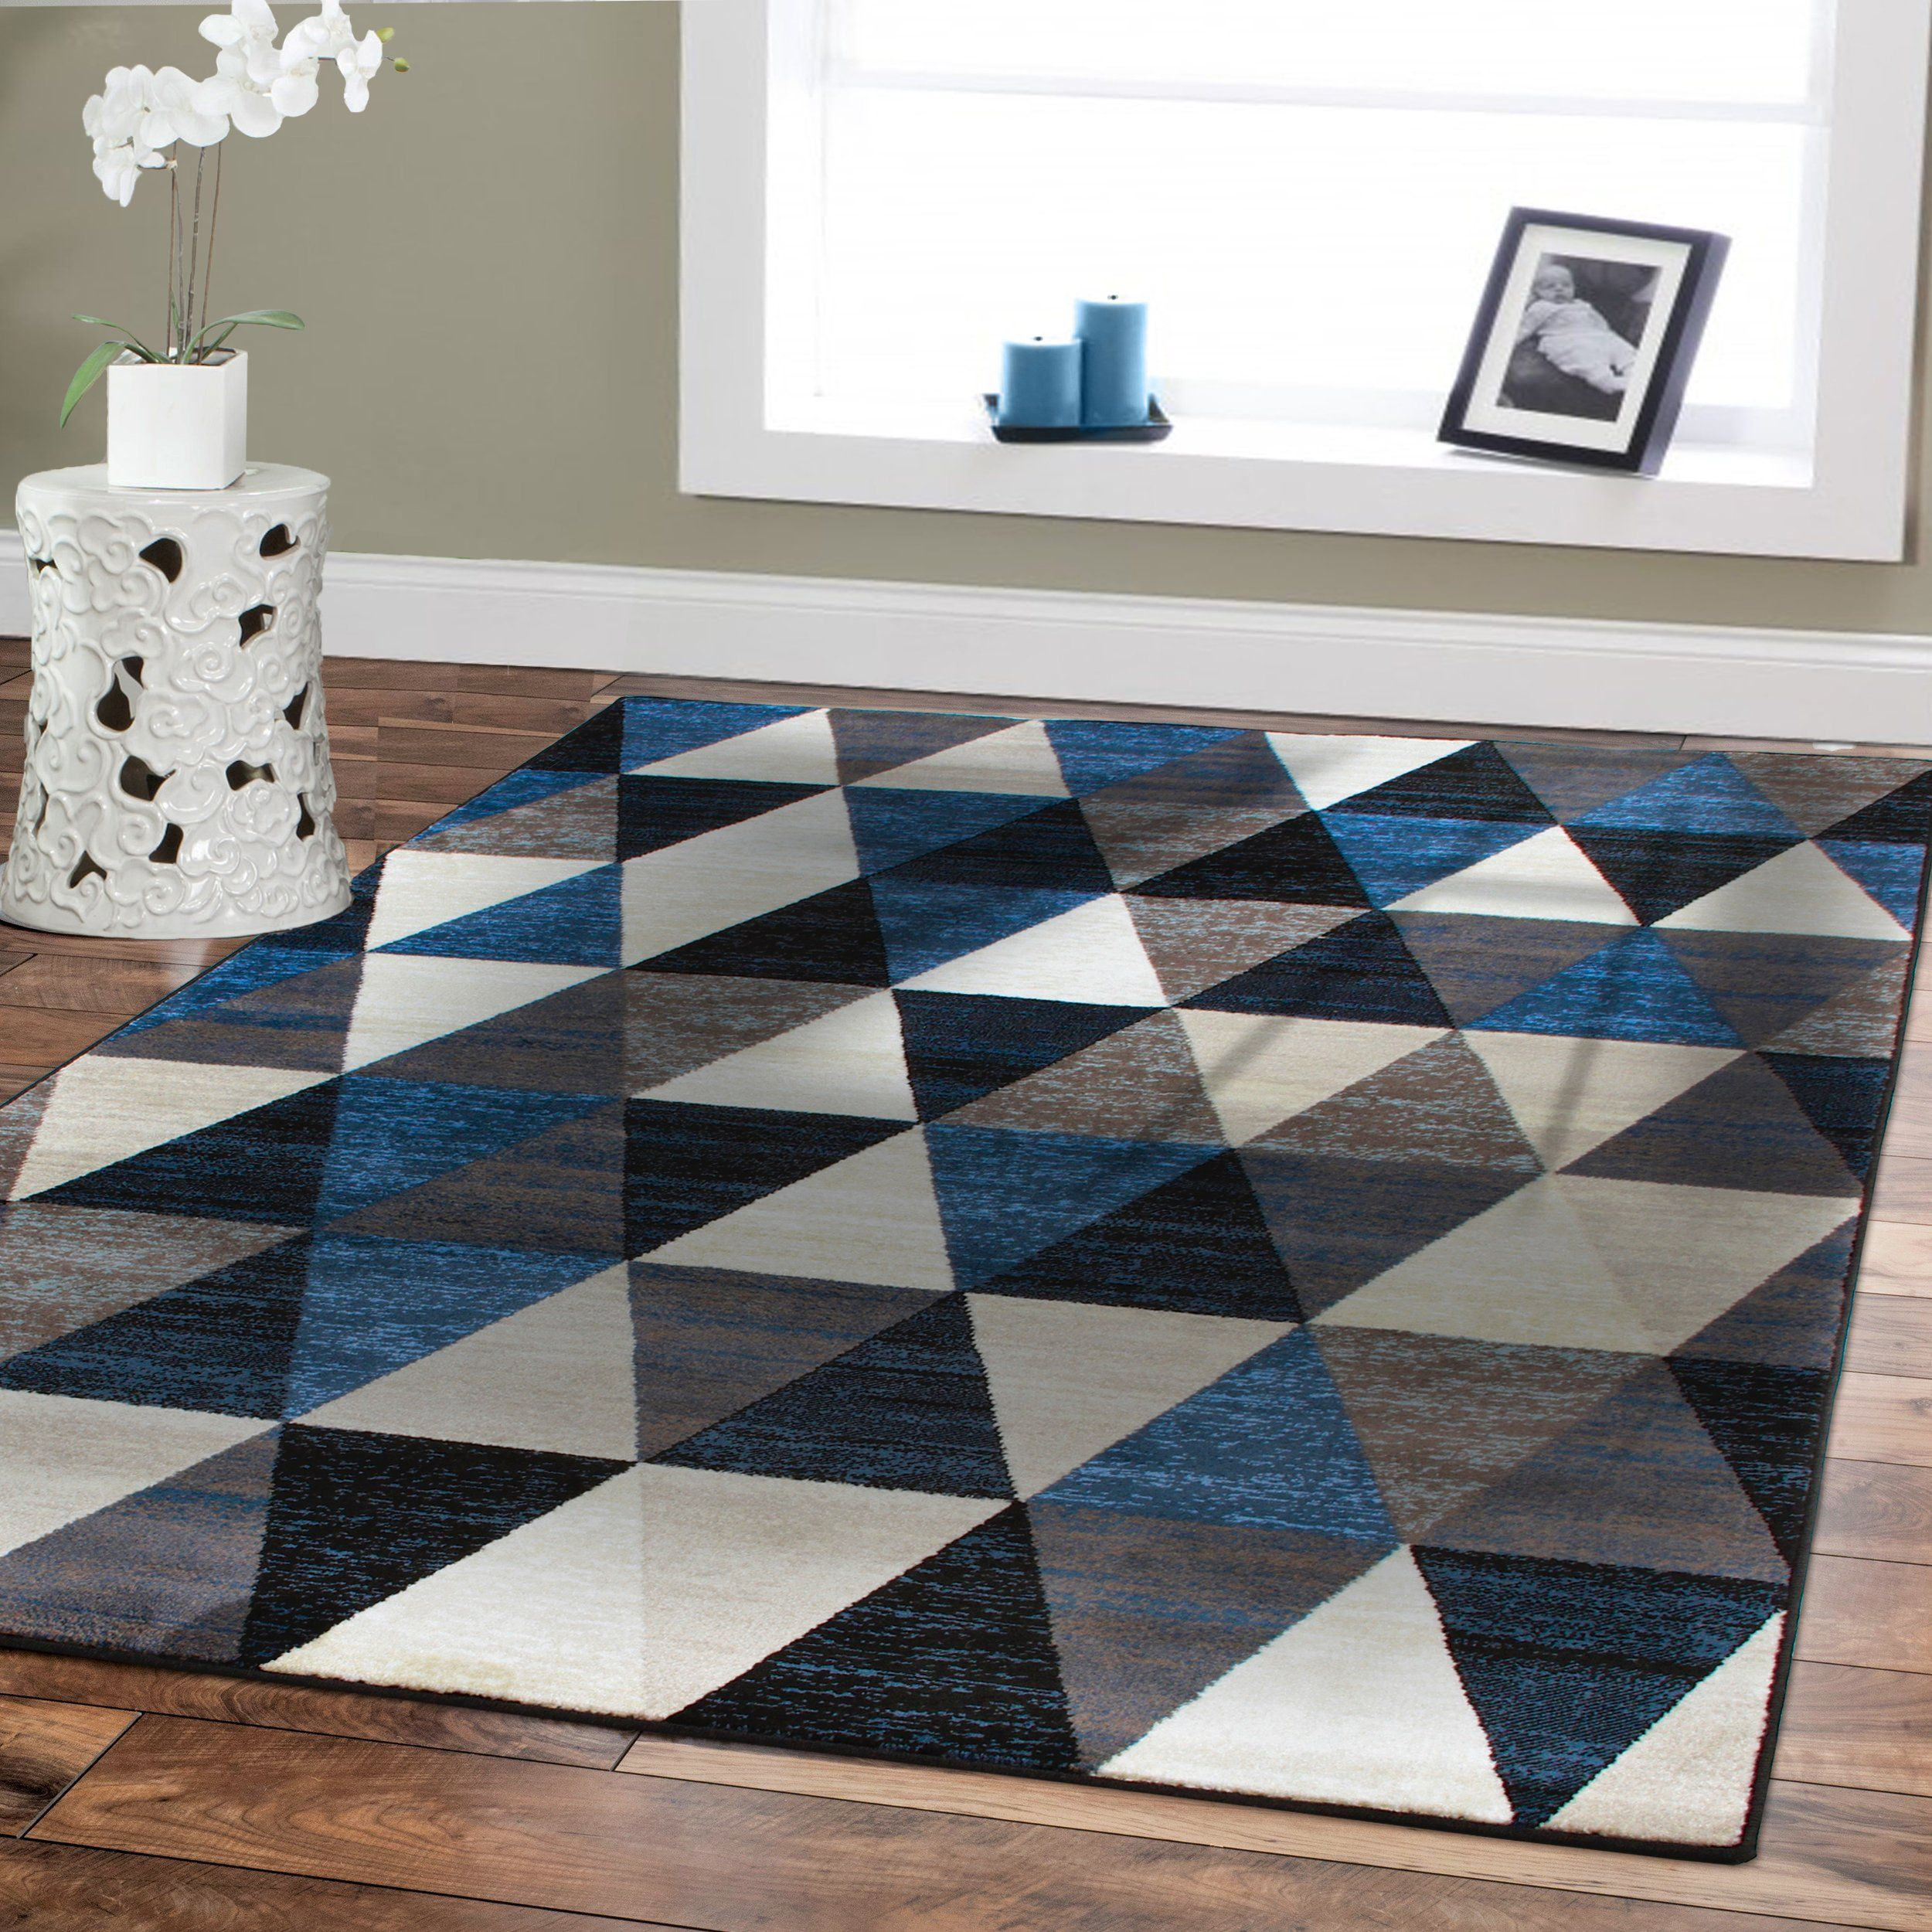 Premium Large Rugs 8x11 Modern Rugs For Brown Sofa Blue Rugs Navy Beige Brown Black Floral Carpets Rugs F Blue Gray Area Rug Modern Area Rugs Contemporary Rugs